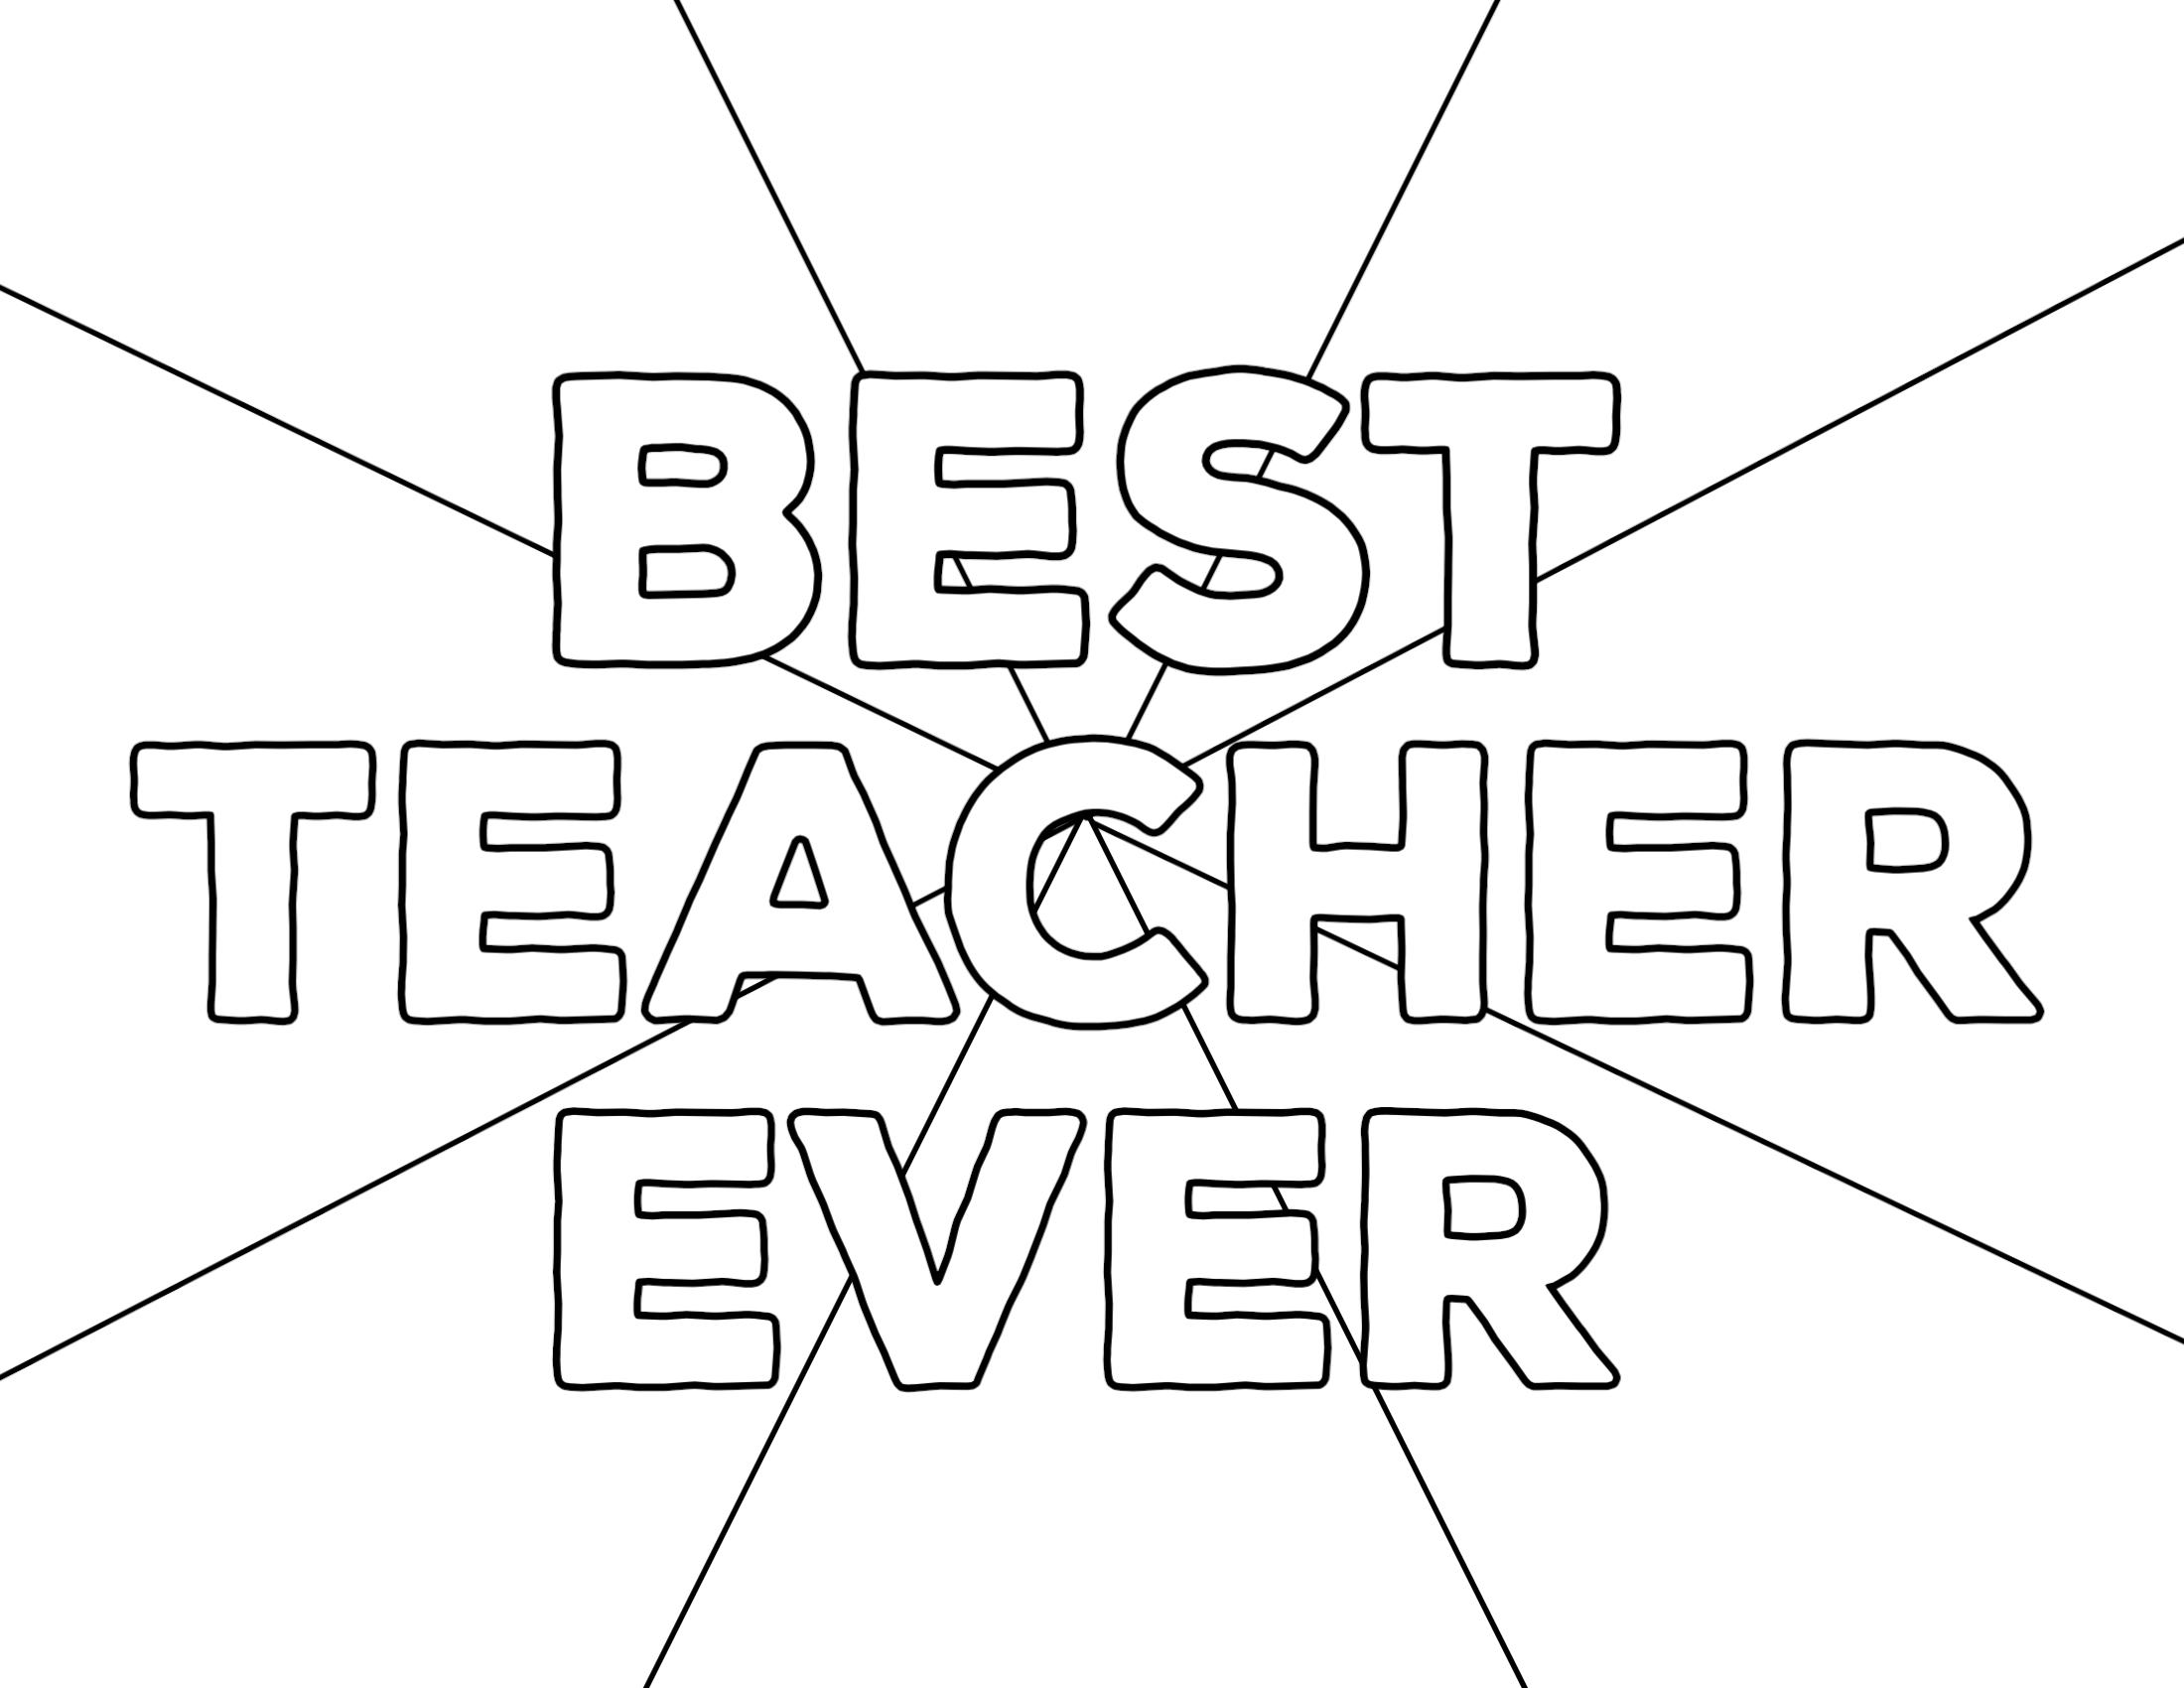 coloring pages for teachers appreciation teacher appreciation coloring pages paper trail design teachers coloring pages appreciation for